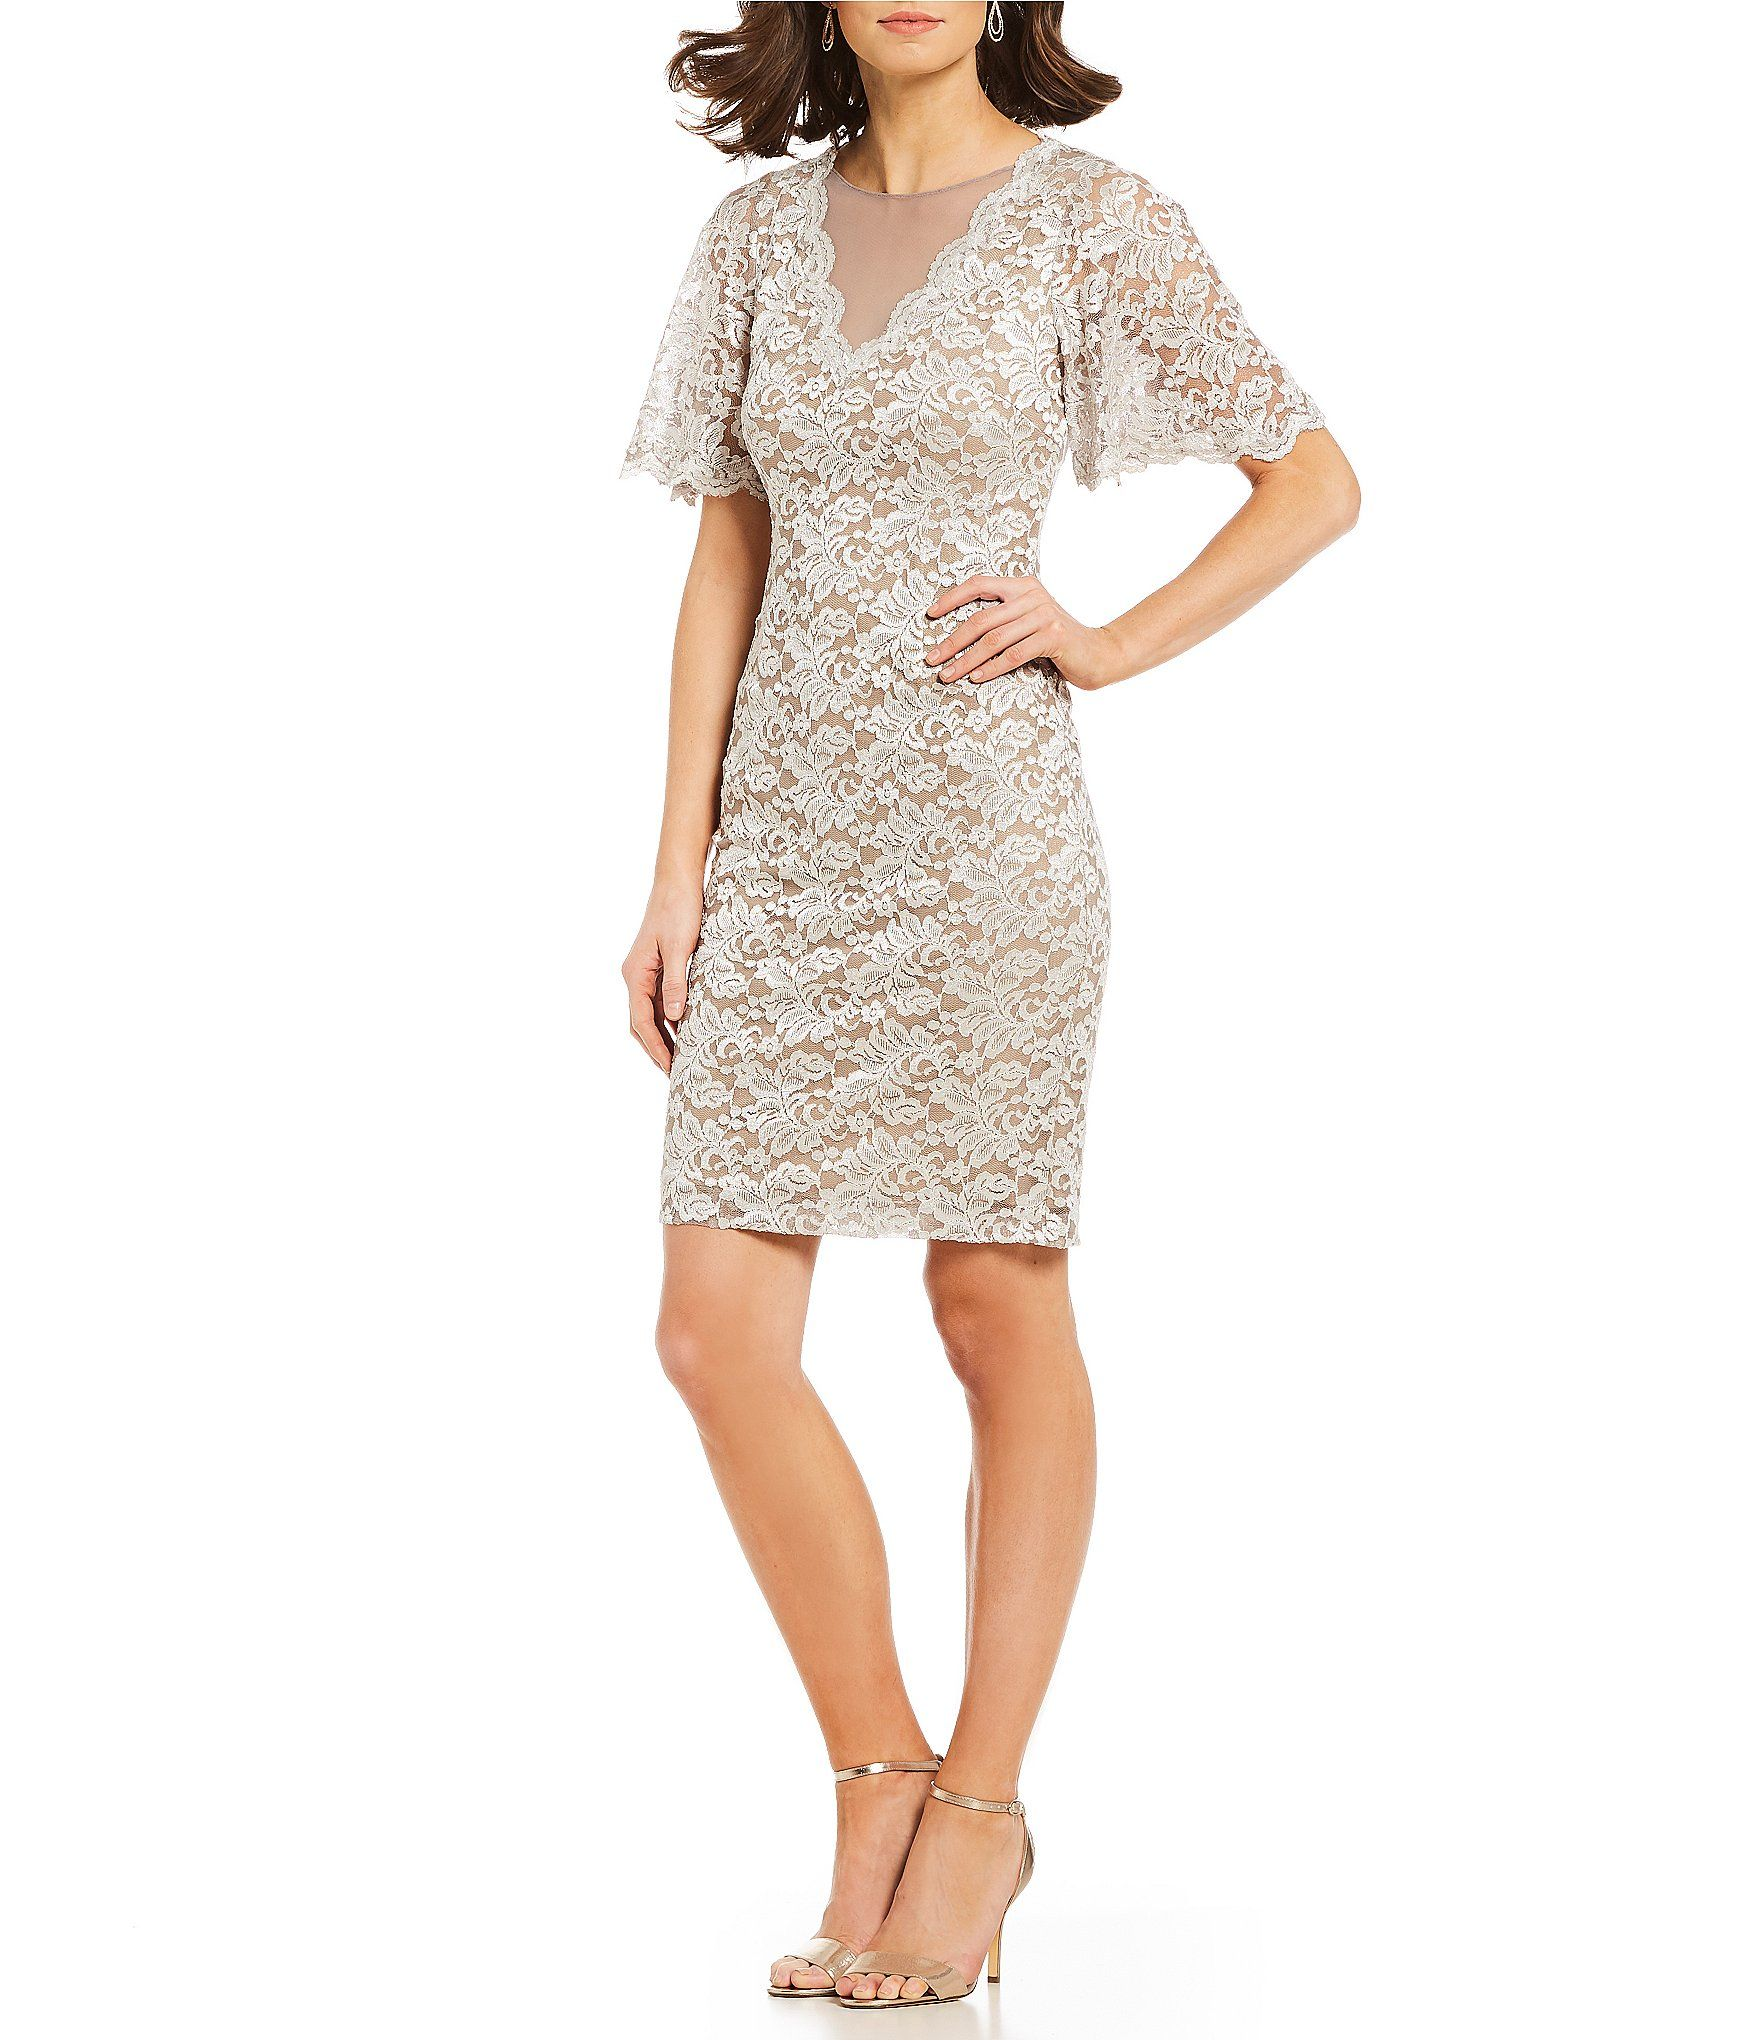 d69fd5b80ad5c3 Shop for Jessica Howard Butterfly Sleeve Lace Sheath Dress at Dillards.com.  Visit Dillards.com to find clothing, accessories, shoes, cosmetics & more.